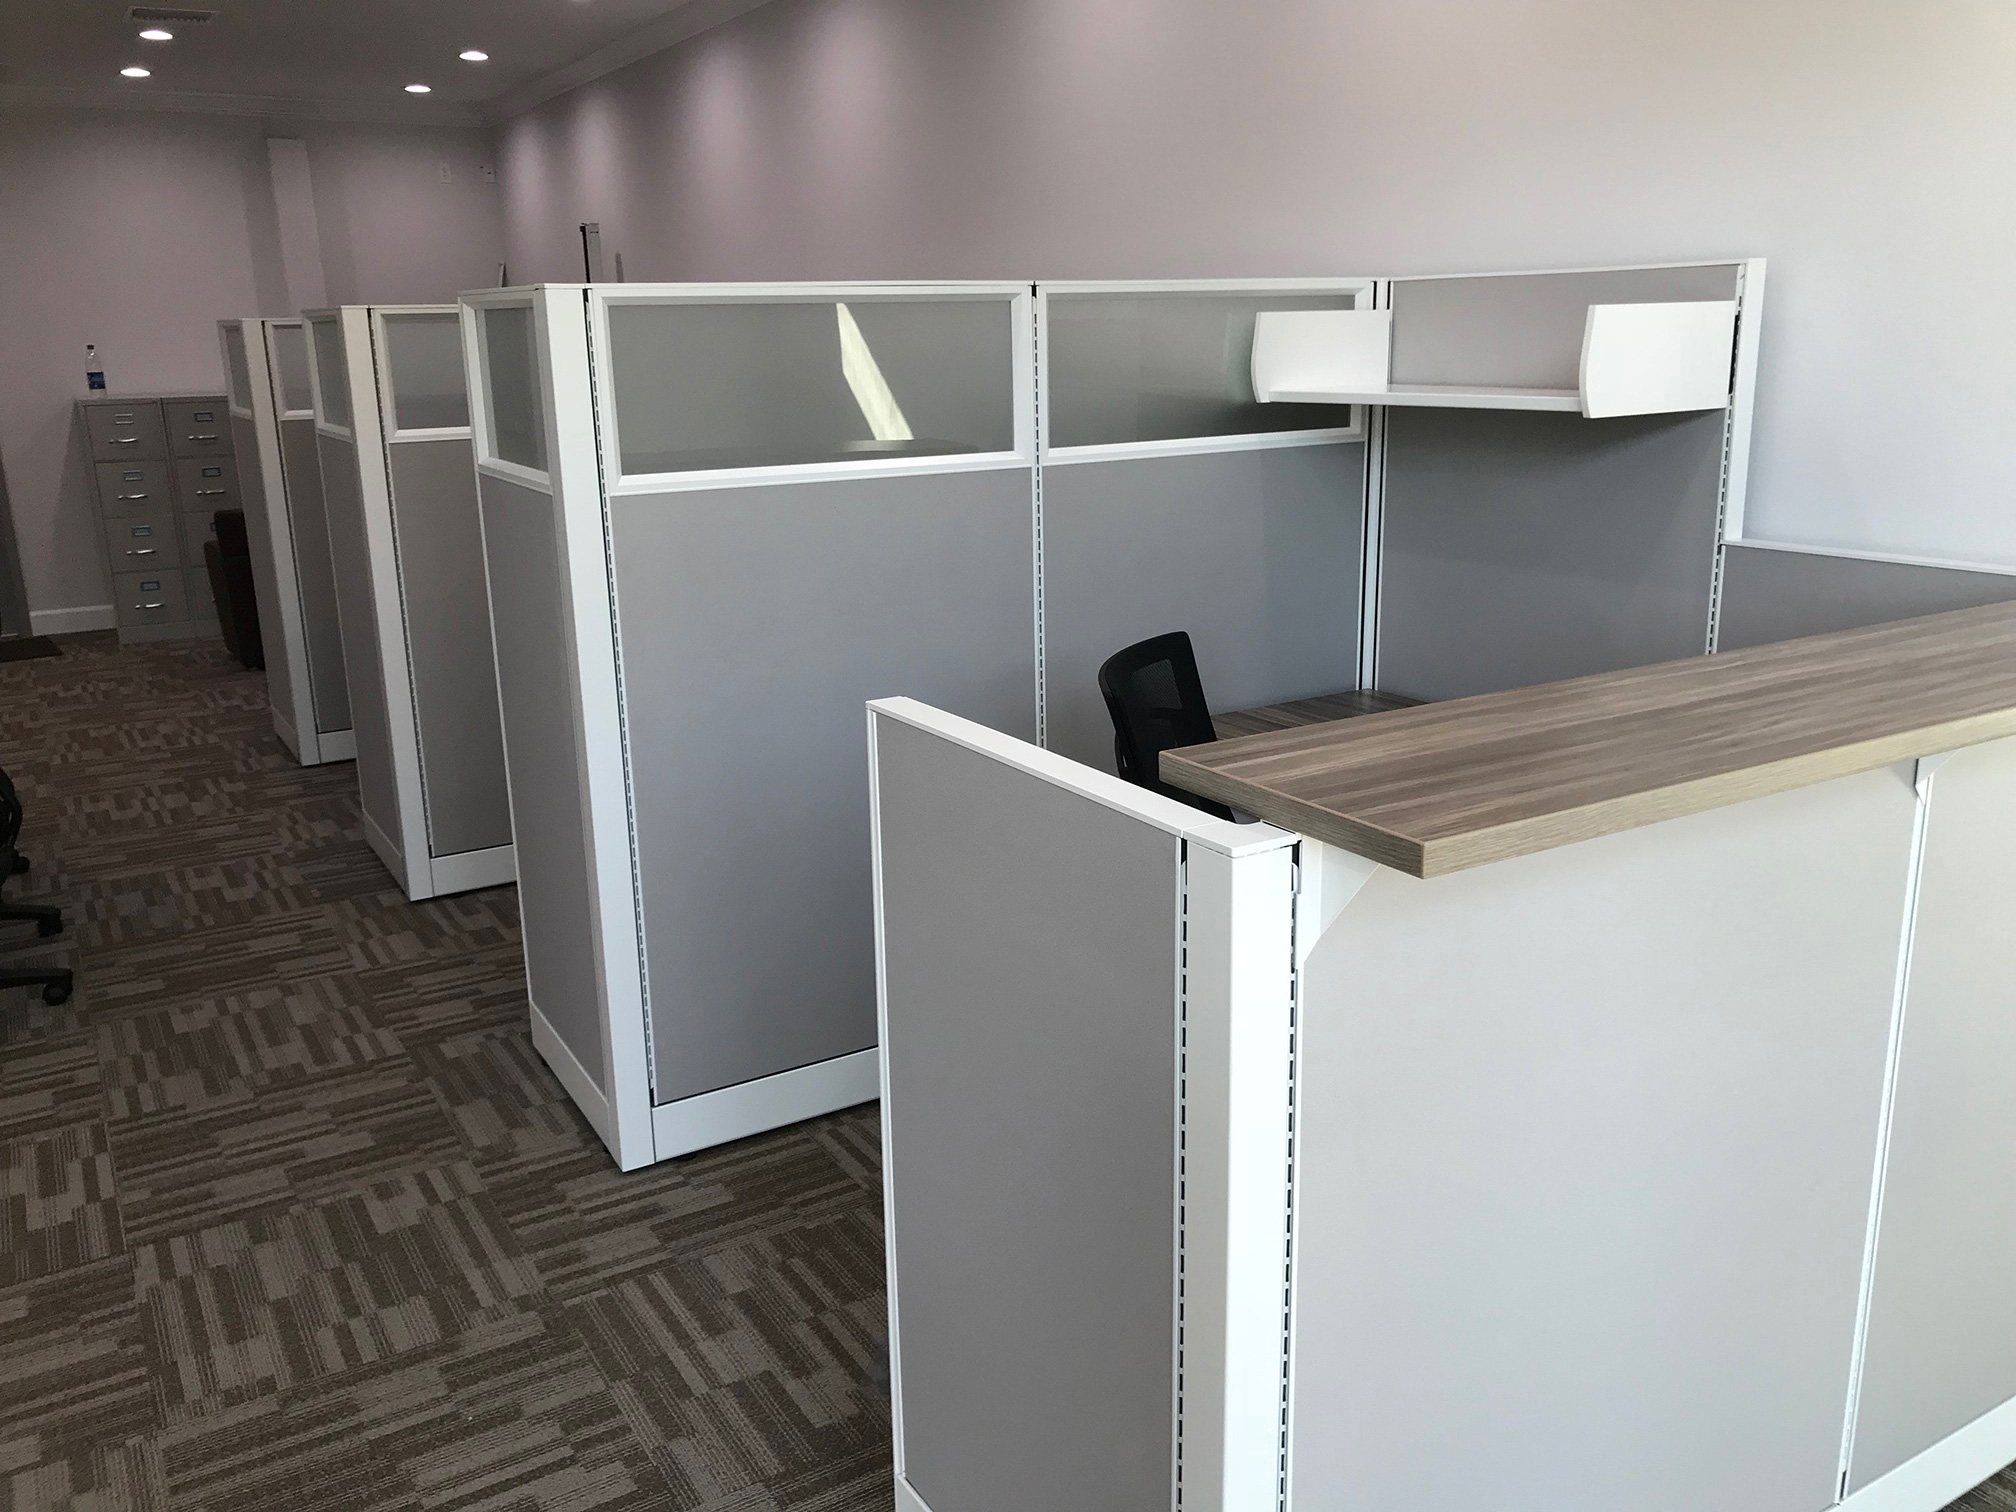 office-cubicles-for-sale-in-deland-florida-3-1.jpg